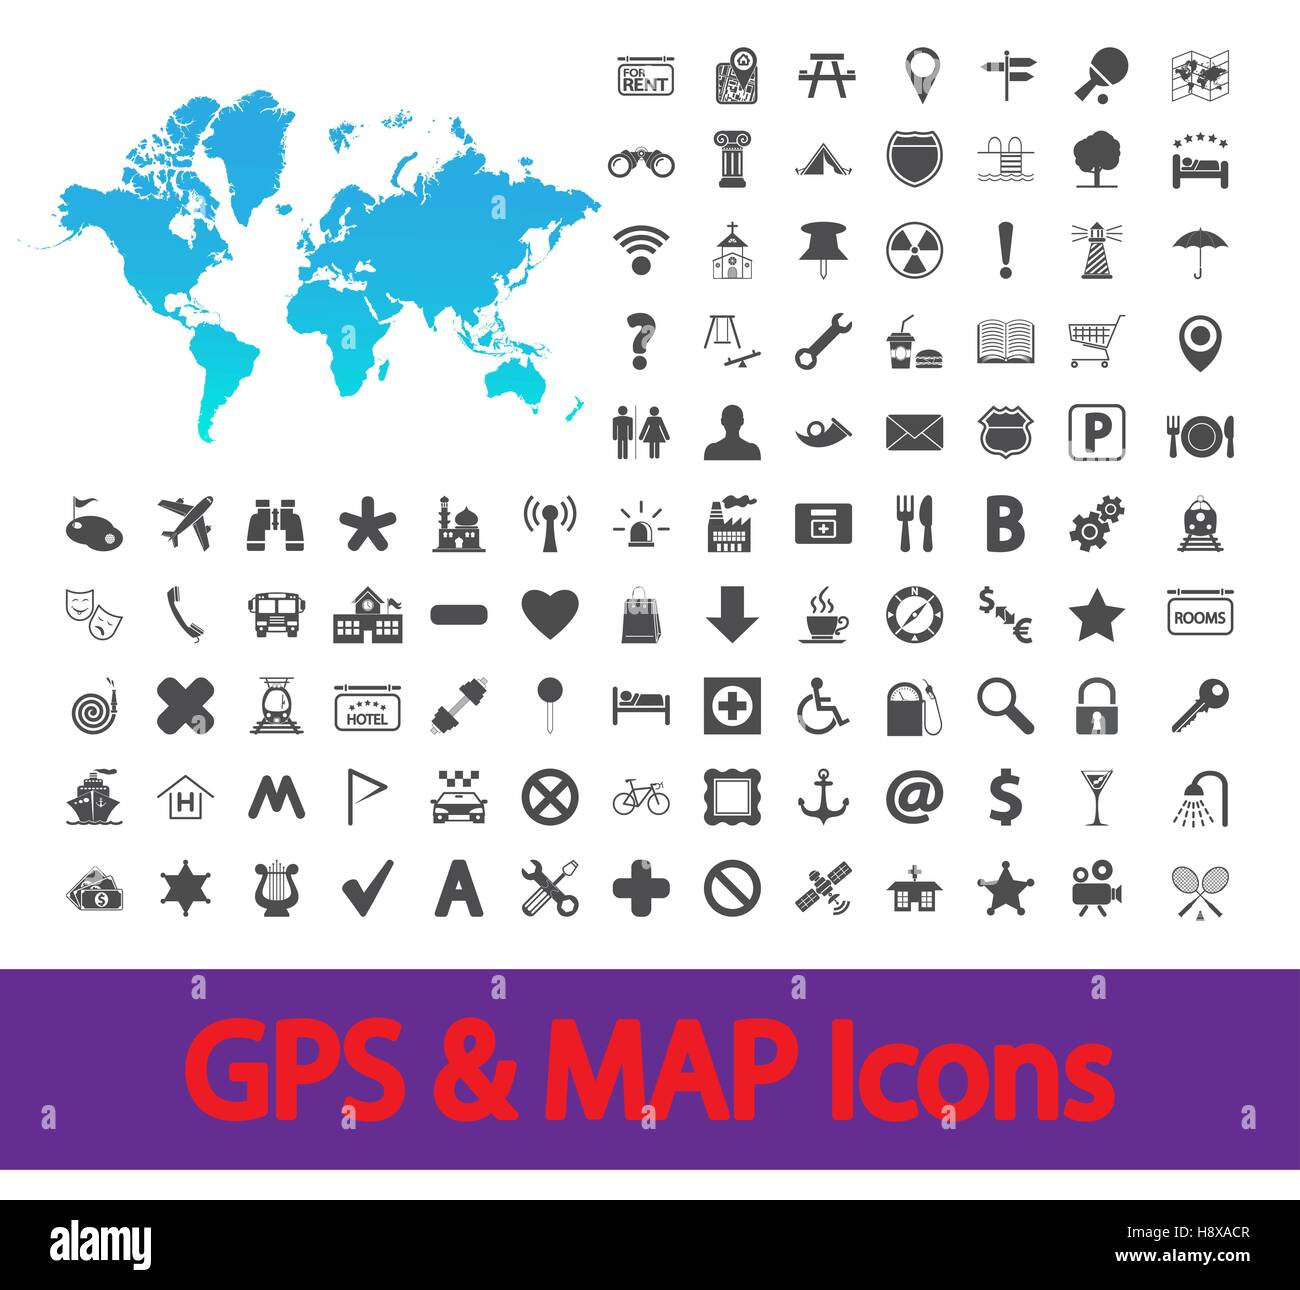 Navigation map icons set. Vector illustration. Stock Vector